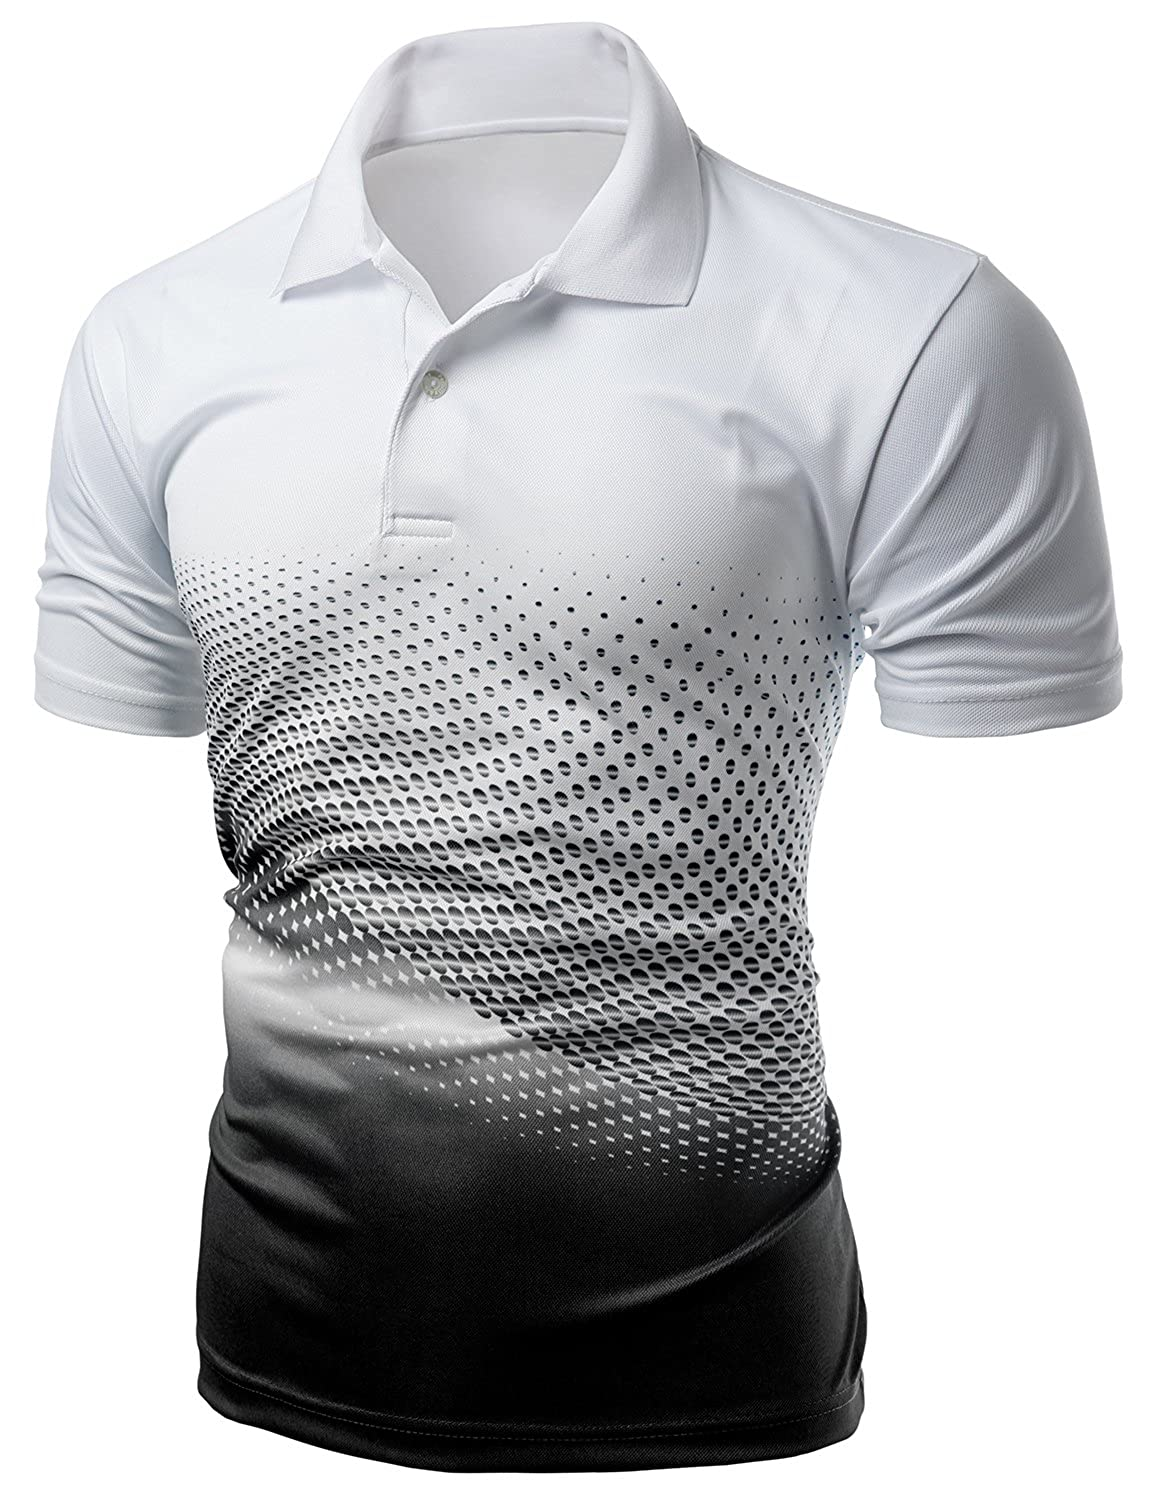 Amazon.com: Xpril Men's Cool Max Fabric Sporty Design Printed Polo ...